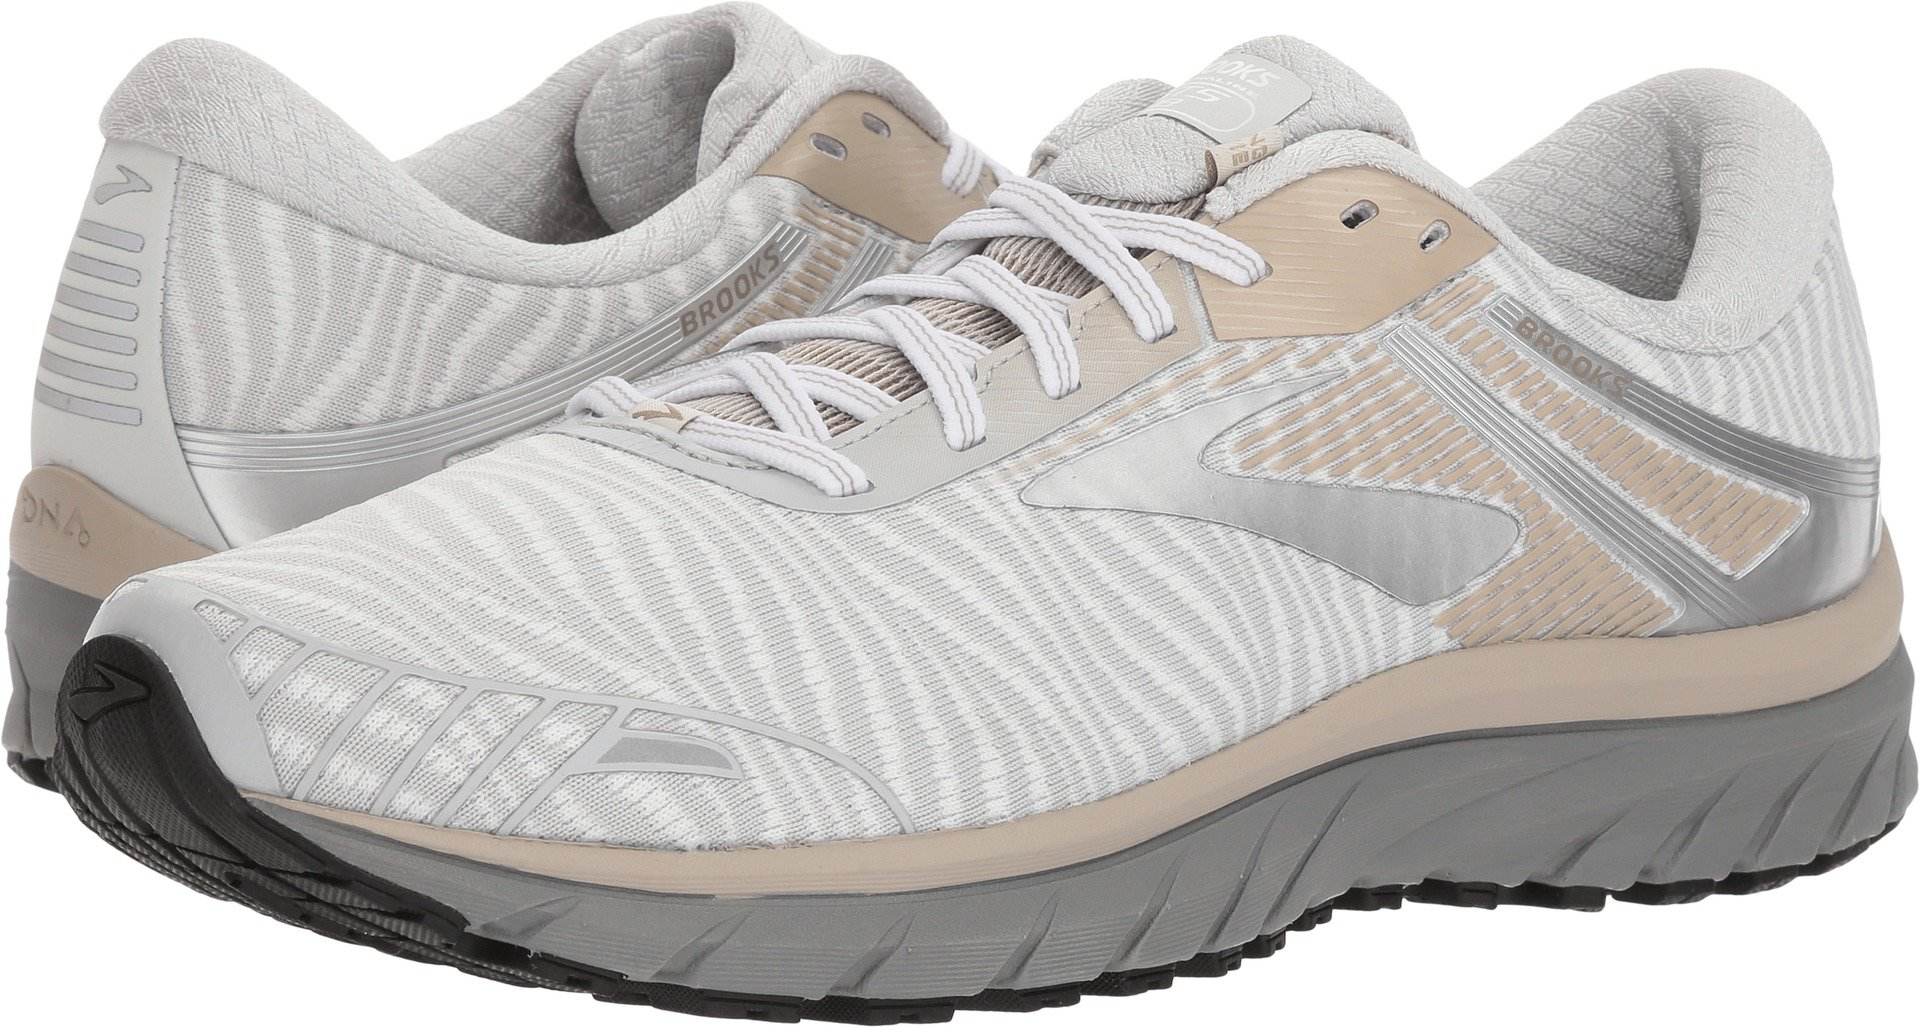 84a03f03f43 Galleon - Brooks Men s Adrenaline GTS 18 White Grey Tan 10.5 D US